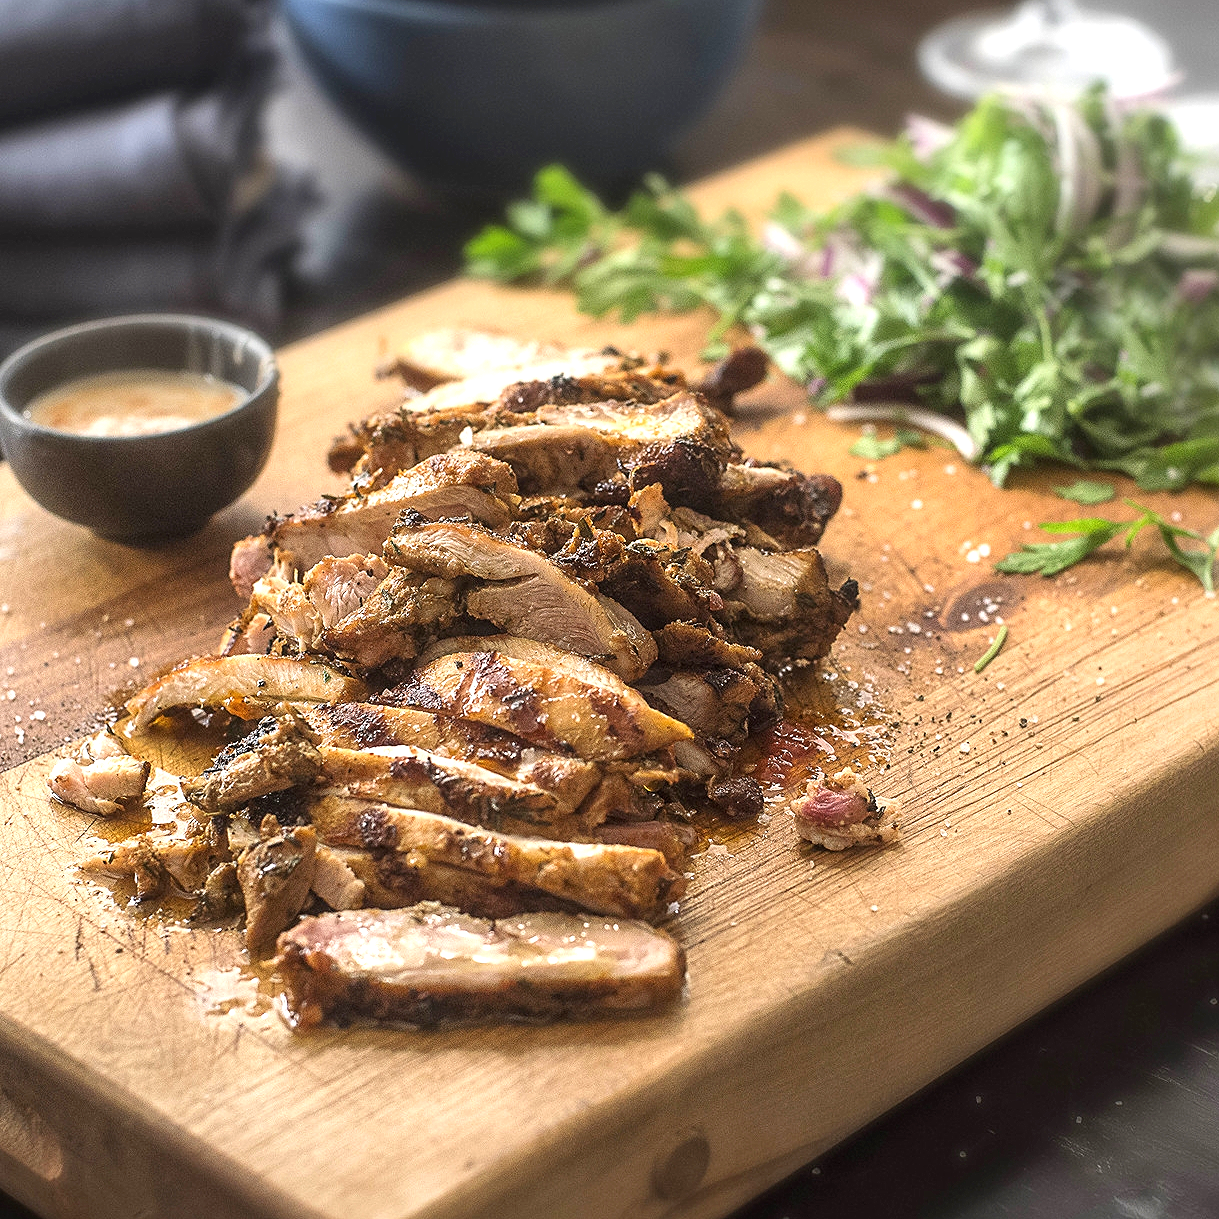 Grilled Spanish Chicken Thighs with Ripped Salad